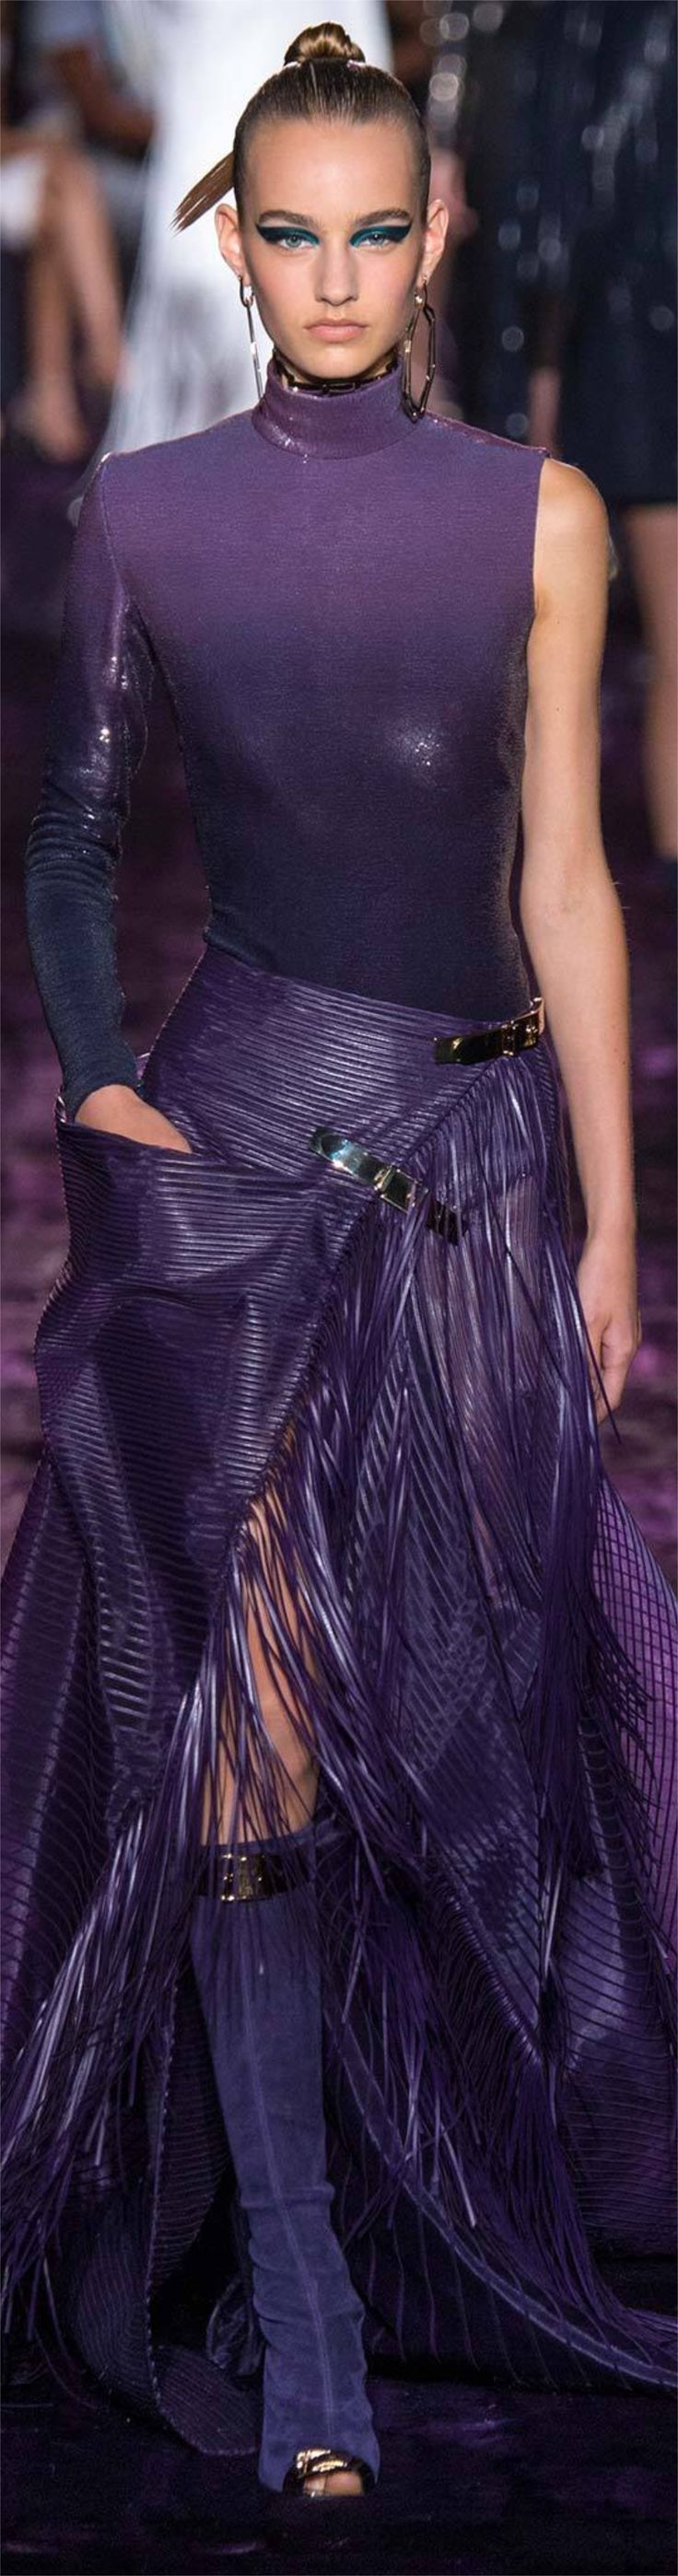 Fall 2014 Couture Atelier Versace | House of Beccaria#